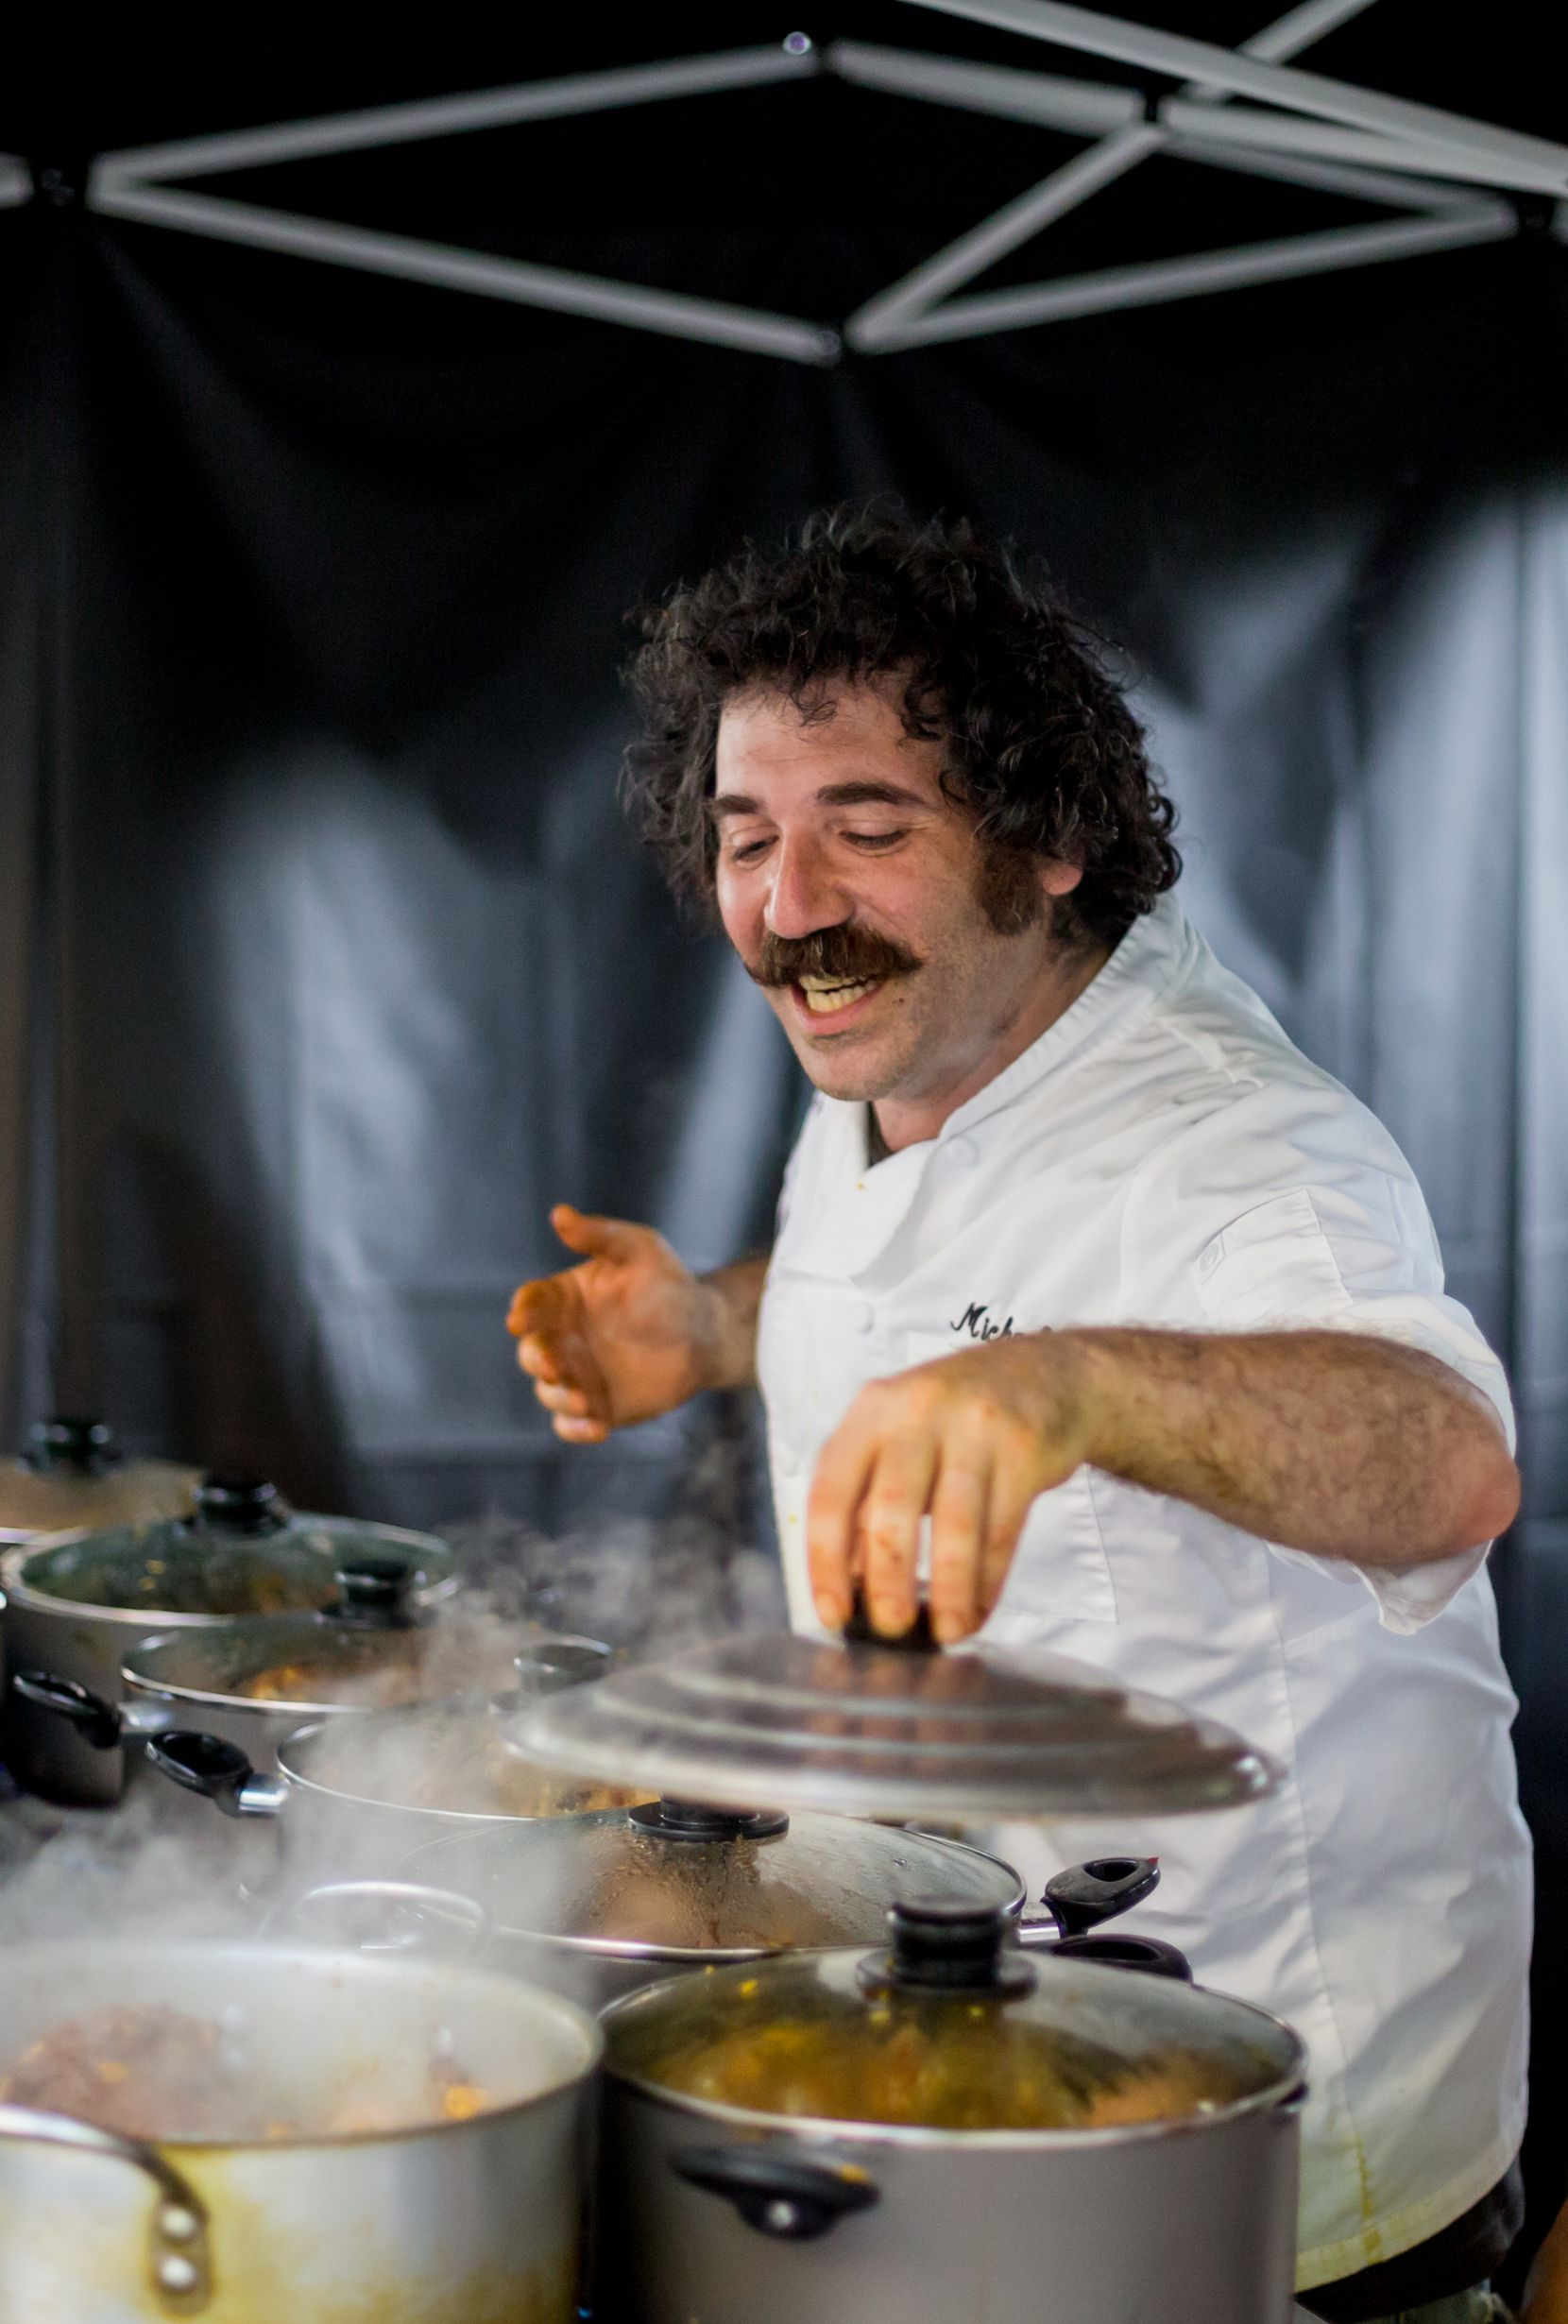 Nasher Prize winner Michael Rakowitz is headed to Dallas to serve traditional Iraqi dishes and Texas barbecue as part of a community celebration. Rakowitz will make the meal with help from Break Bread Break Borders, a Dallas-based catering company that economically empowers refugee women by employing them as cooks.